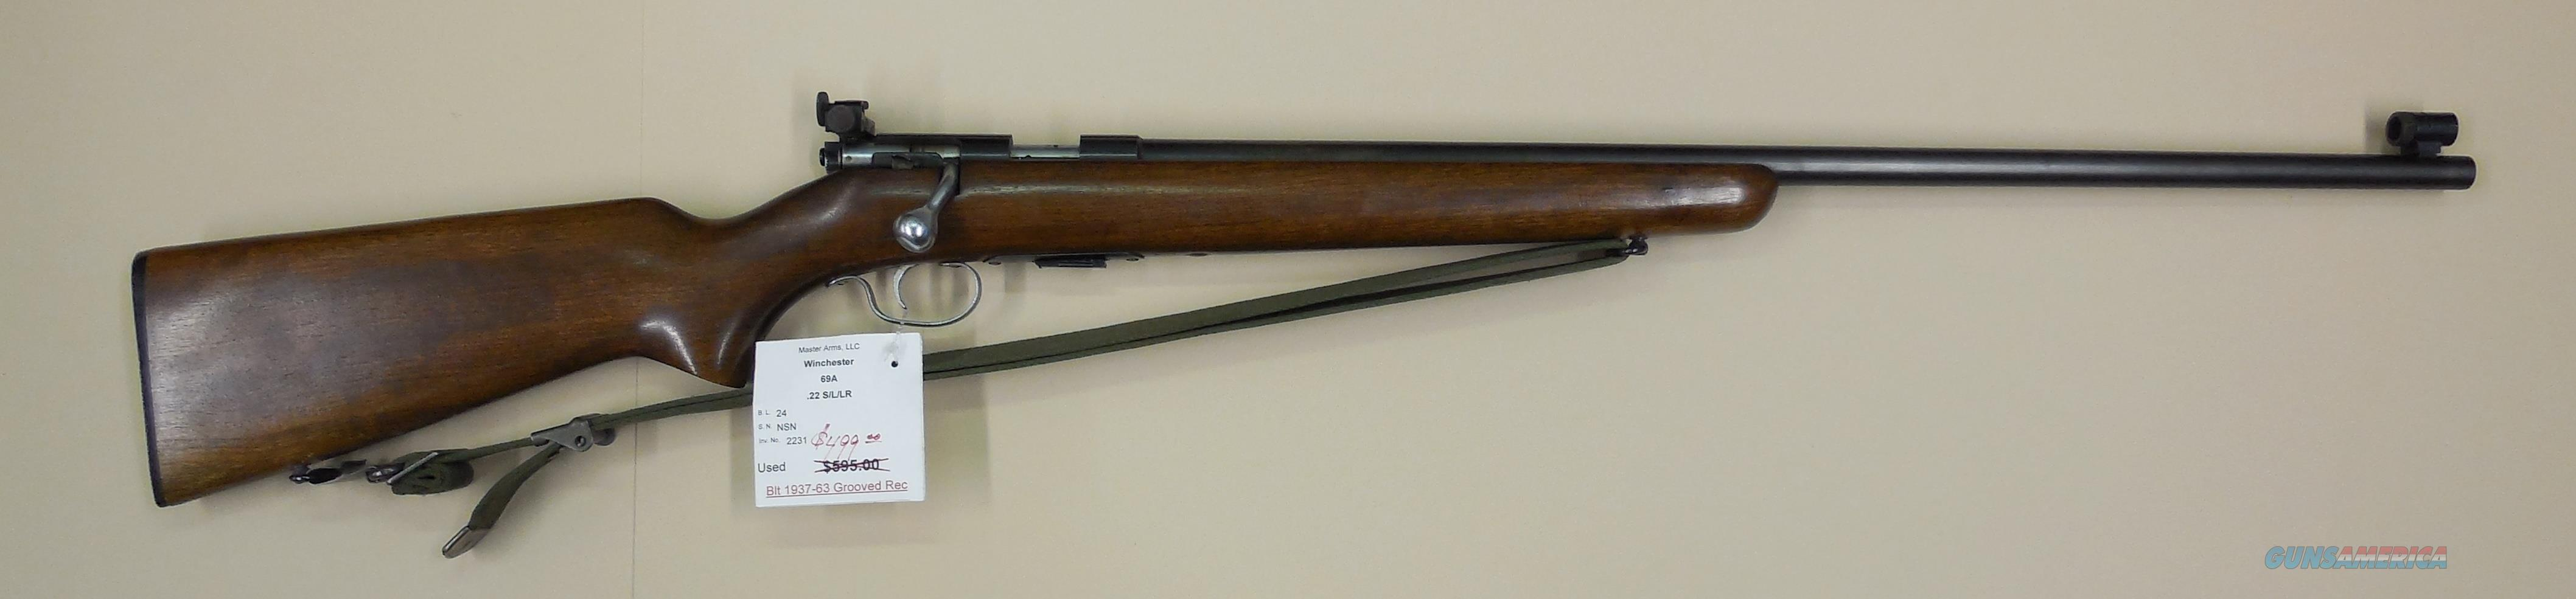 WINCHESTER 69A  Guns > Rifles > Winchester Rifles - Modern Bolt/Auto/Single > Other Bolt Action